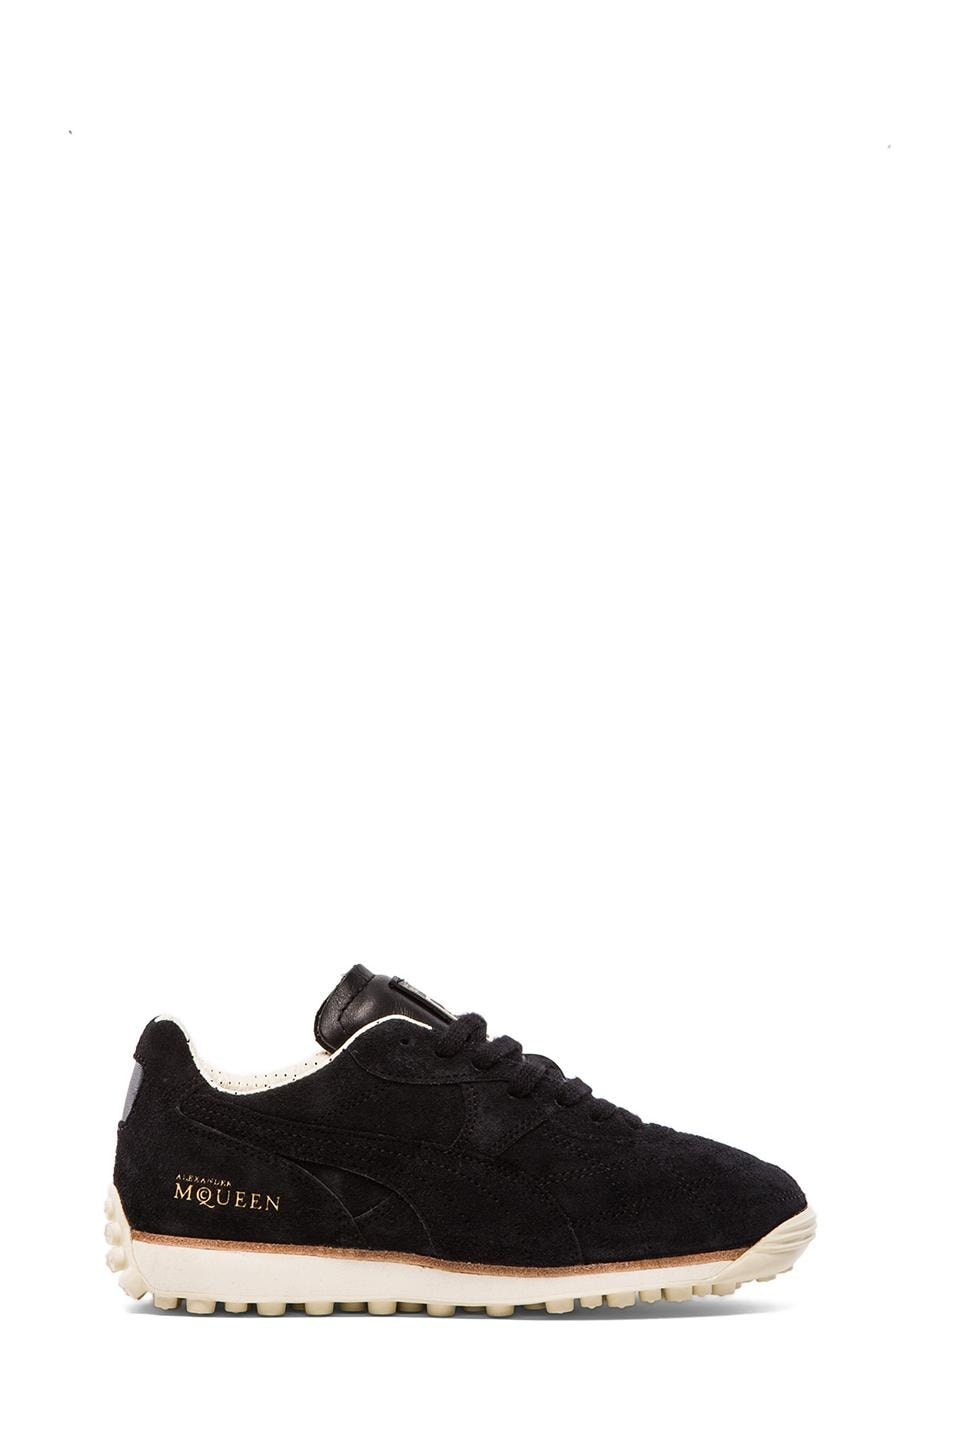 Alexander McQueen Puma AMQ Rocket Sneakers in Black